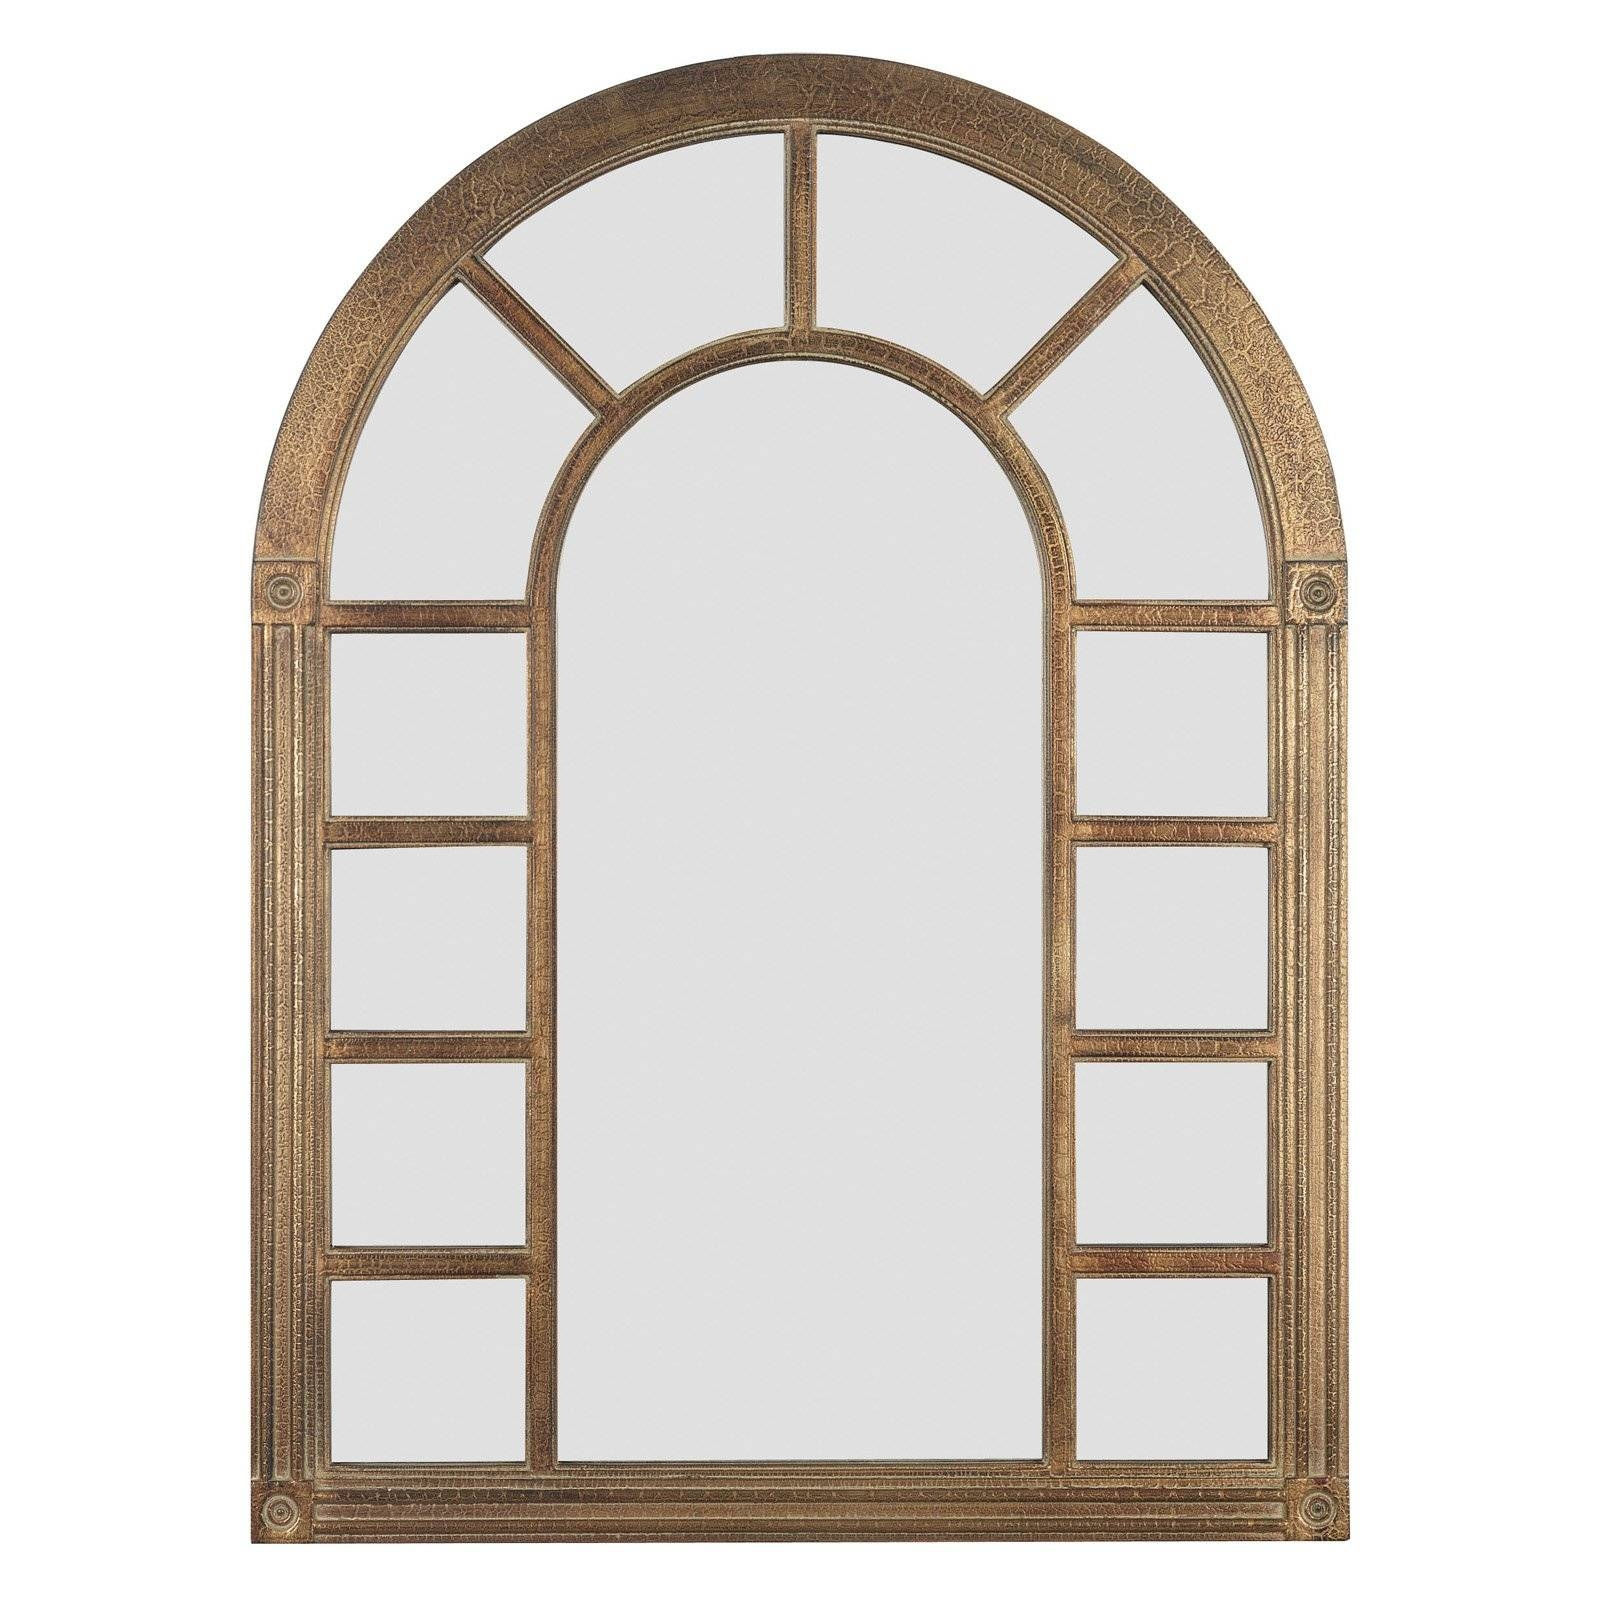 Aspire Home Accents Arched Window Wall Mirror – 25W X 42H In Throughout Arched Wall Mirrors (View 14 of 15)